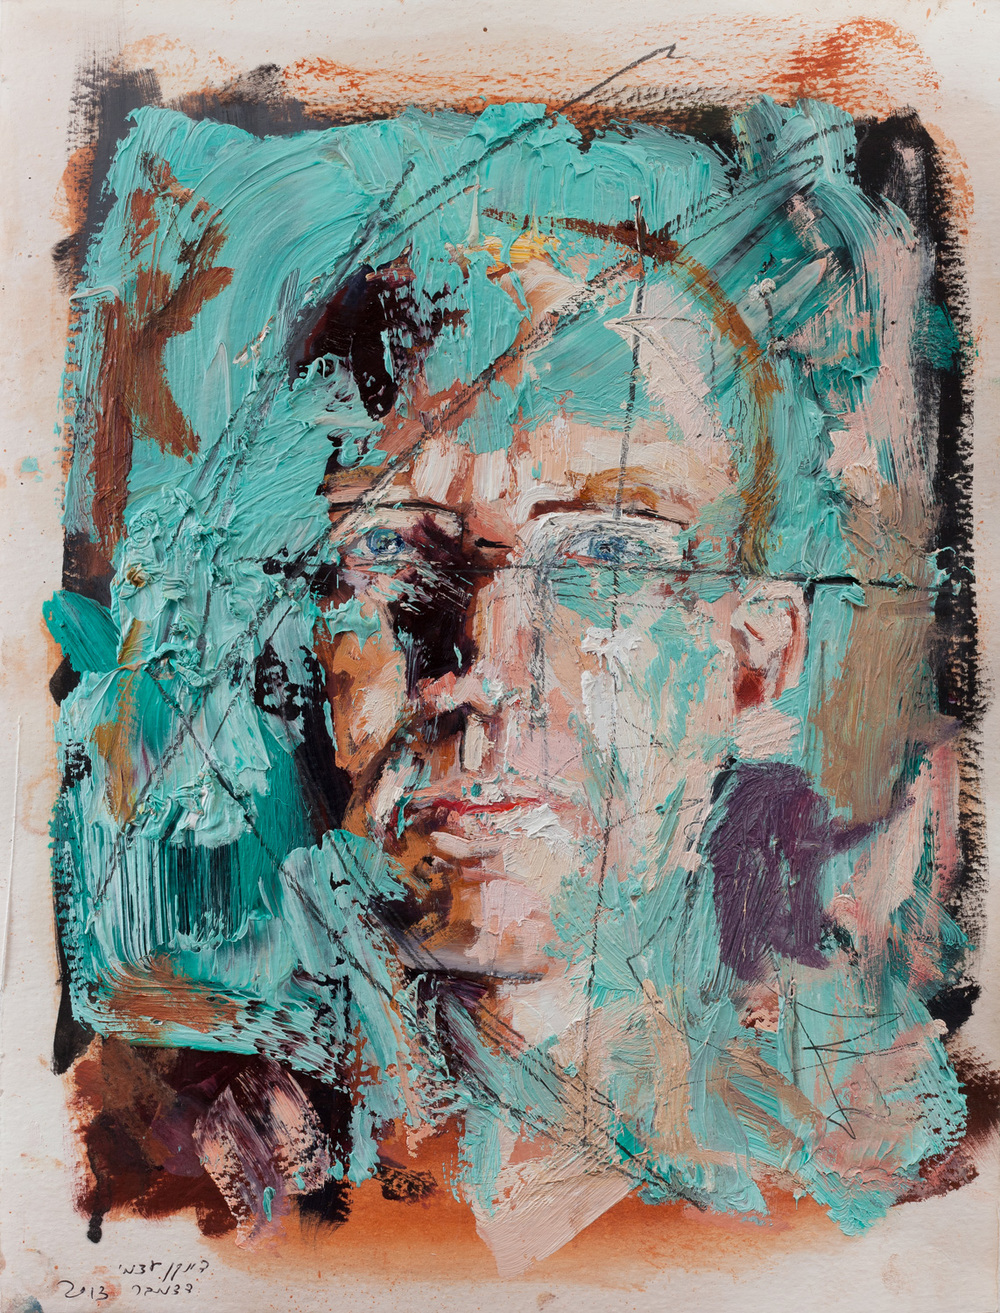 Self Portrait, Oil on paper, 30x40 cm, 2013